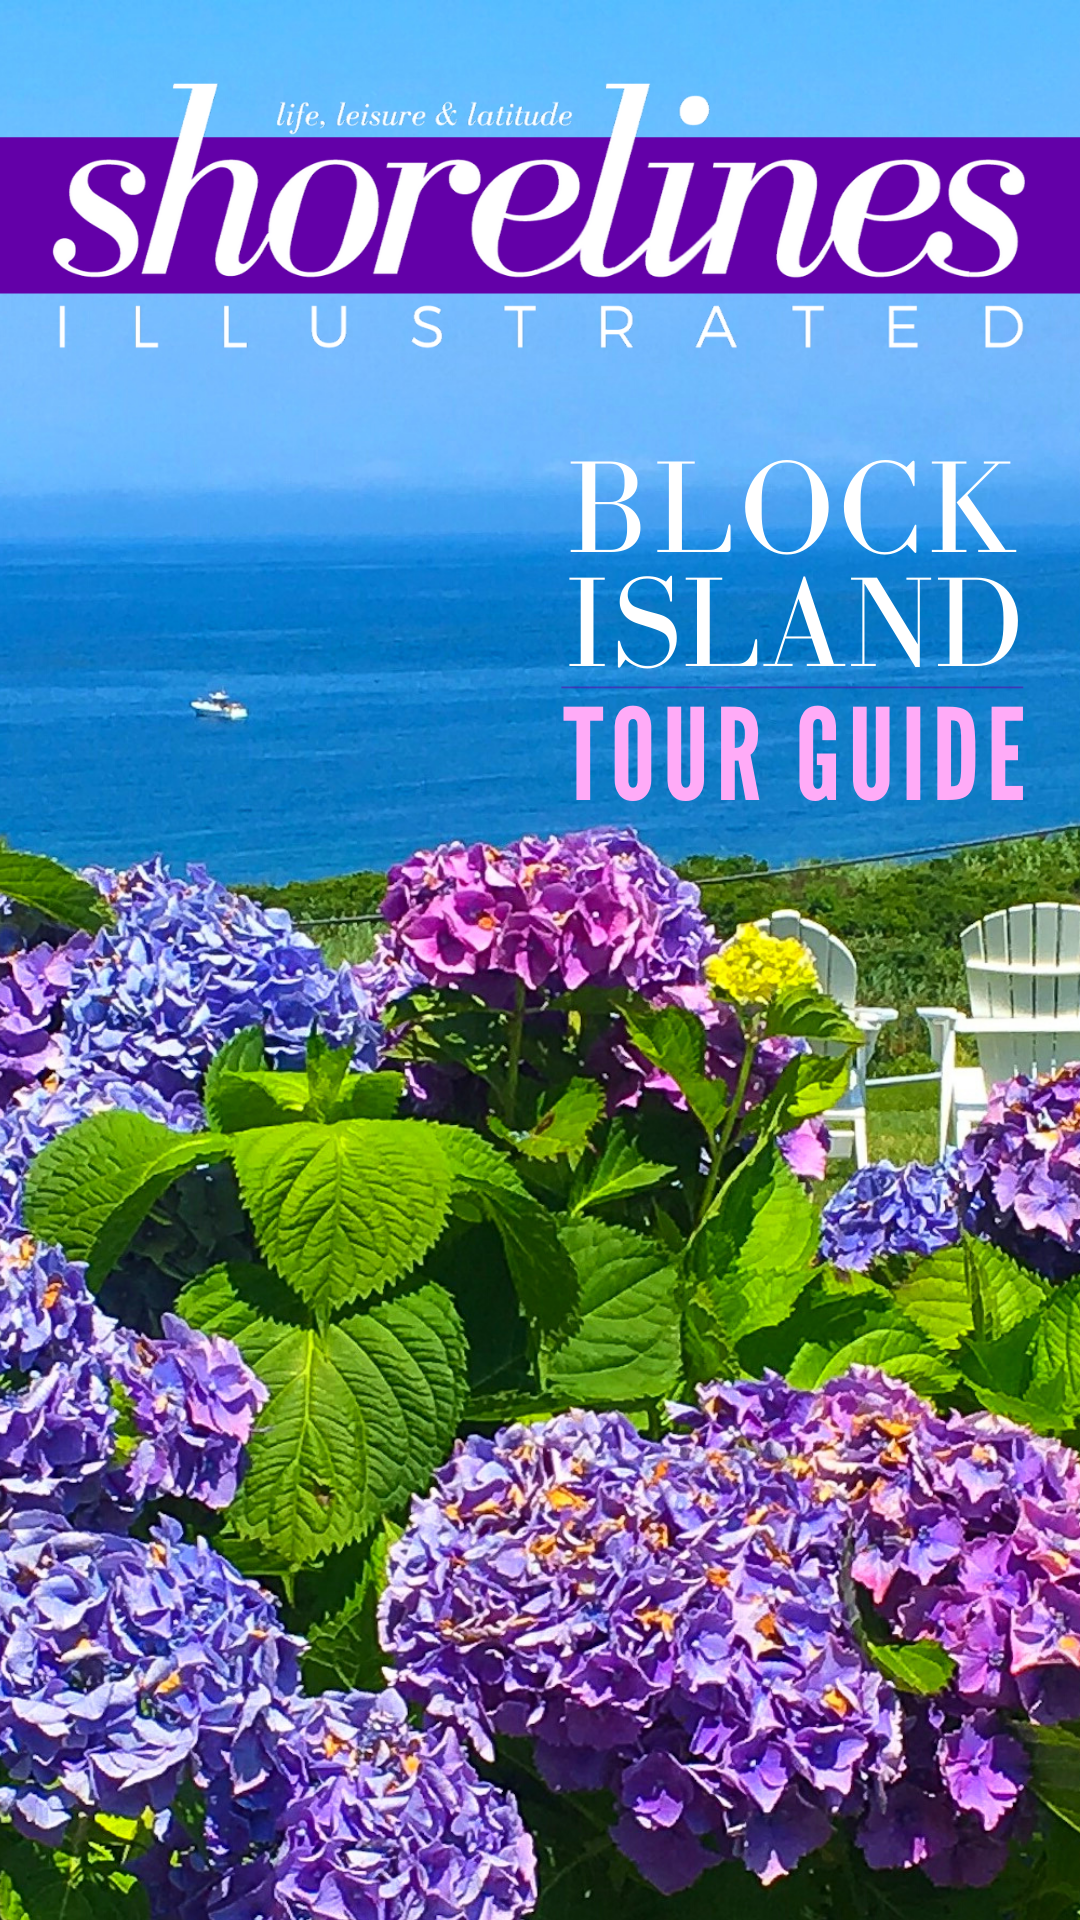 Block Island Tour Guide-1